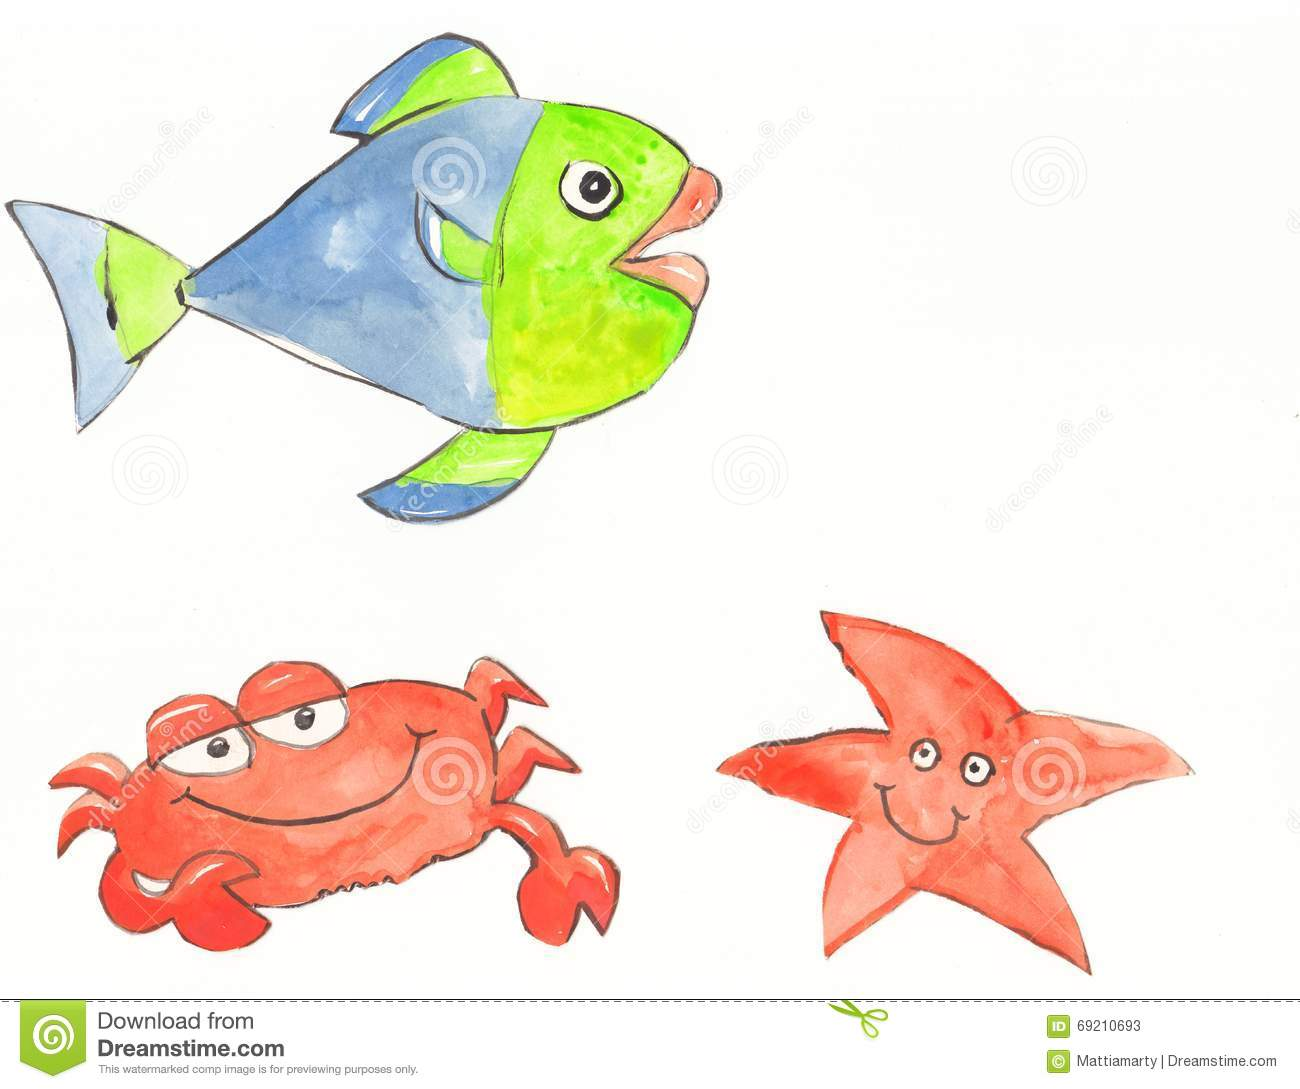 Crab starfish and fish stock illustration image 69210693 for Happy fish swimming